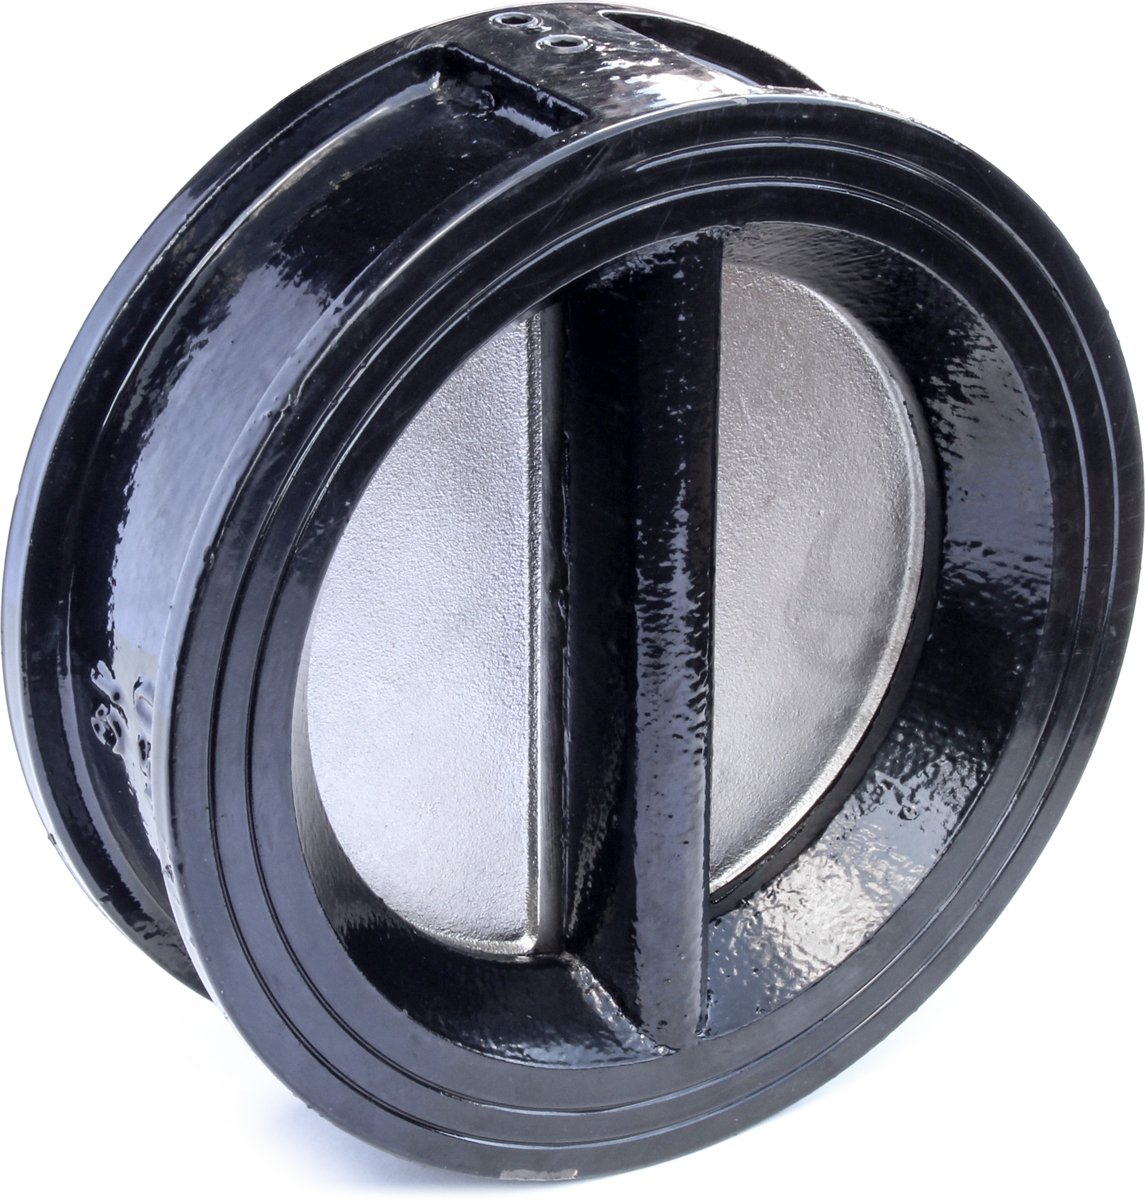 Wafer Cast Iron Double Wing IrrigationKing RKCV-8 8 Check Valve